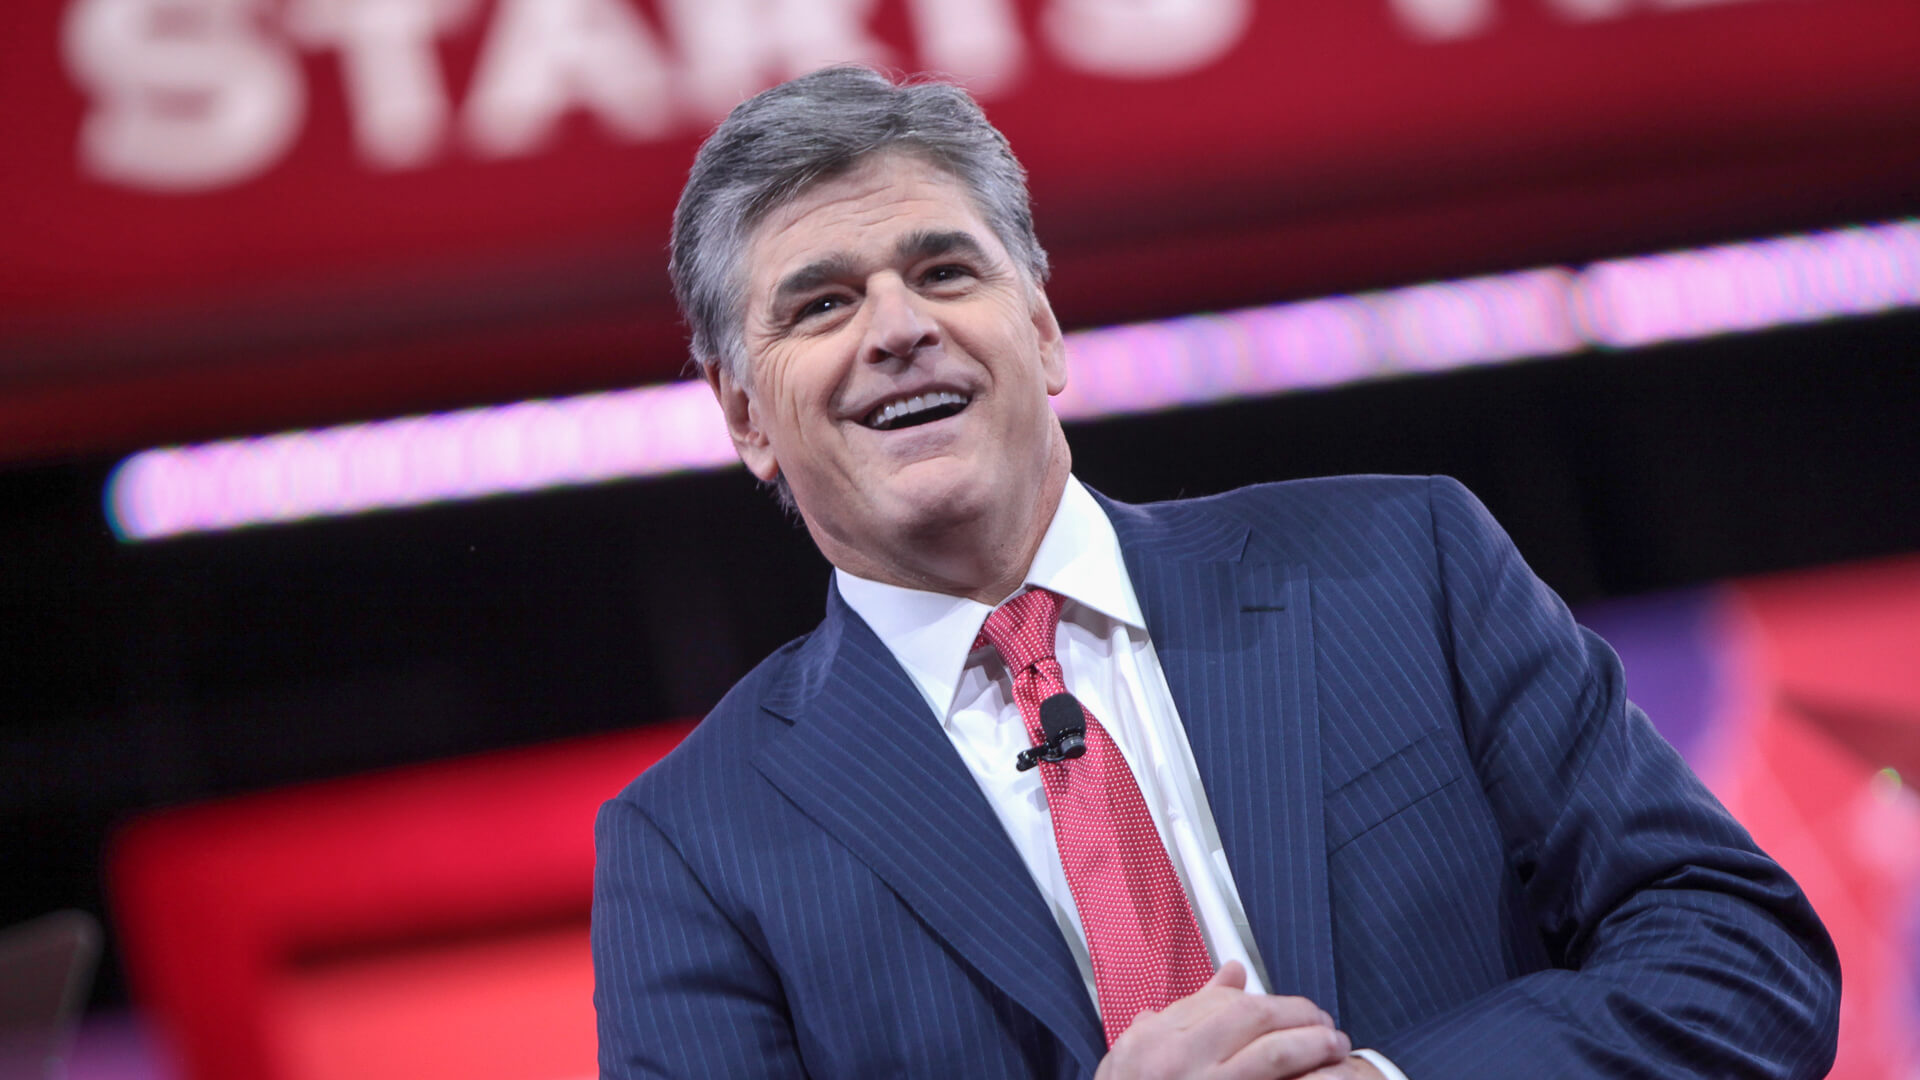 Sean Hannity Net Worth: His Fox News, Real Estate Investment